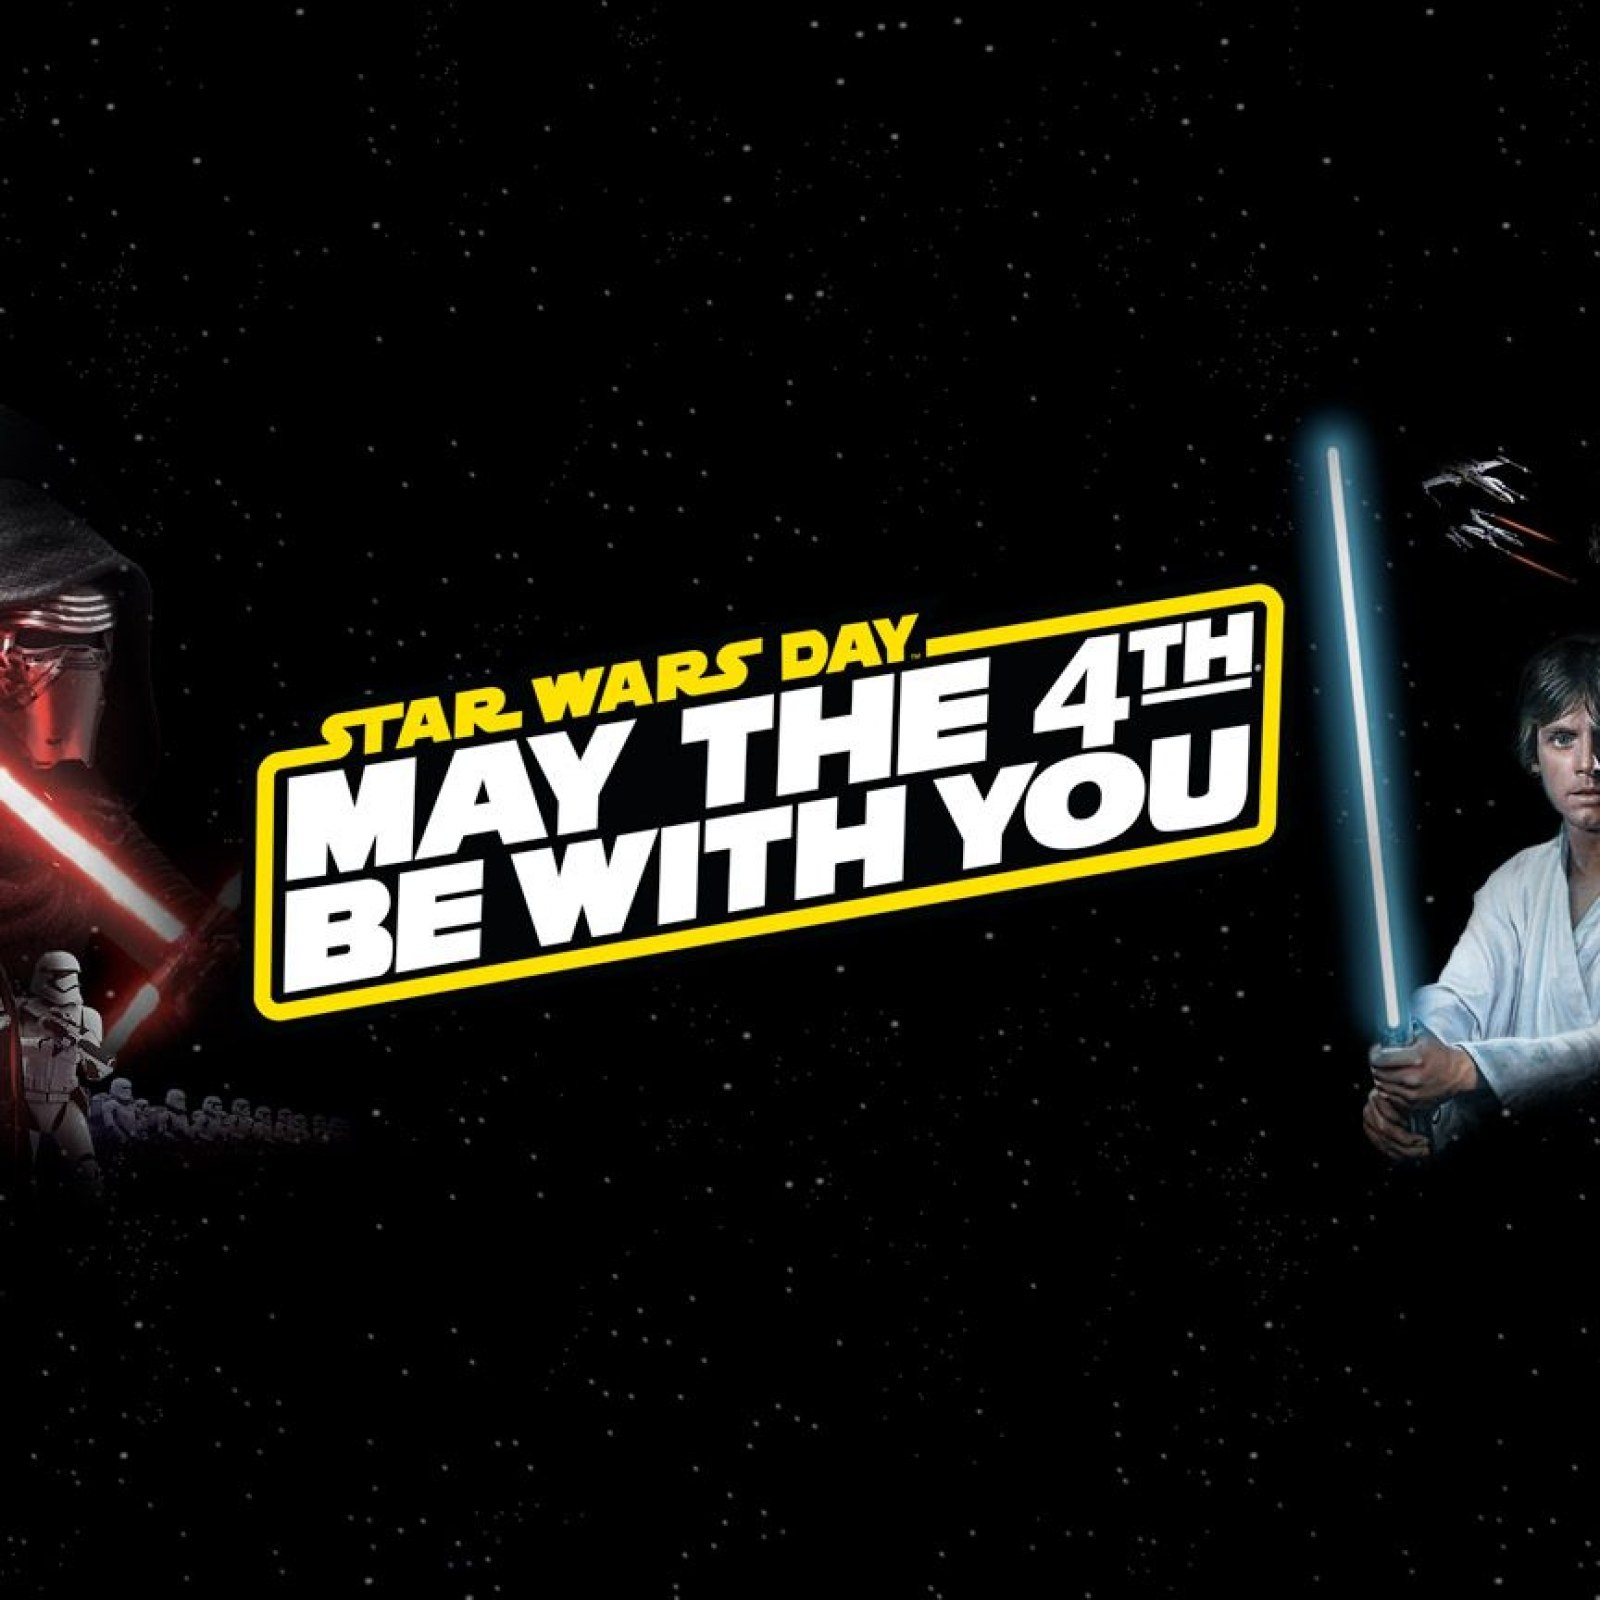 A Concise History Of May The Fourth And Star Wars Day And Your Guide To Star Wars Day Deals